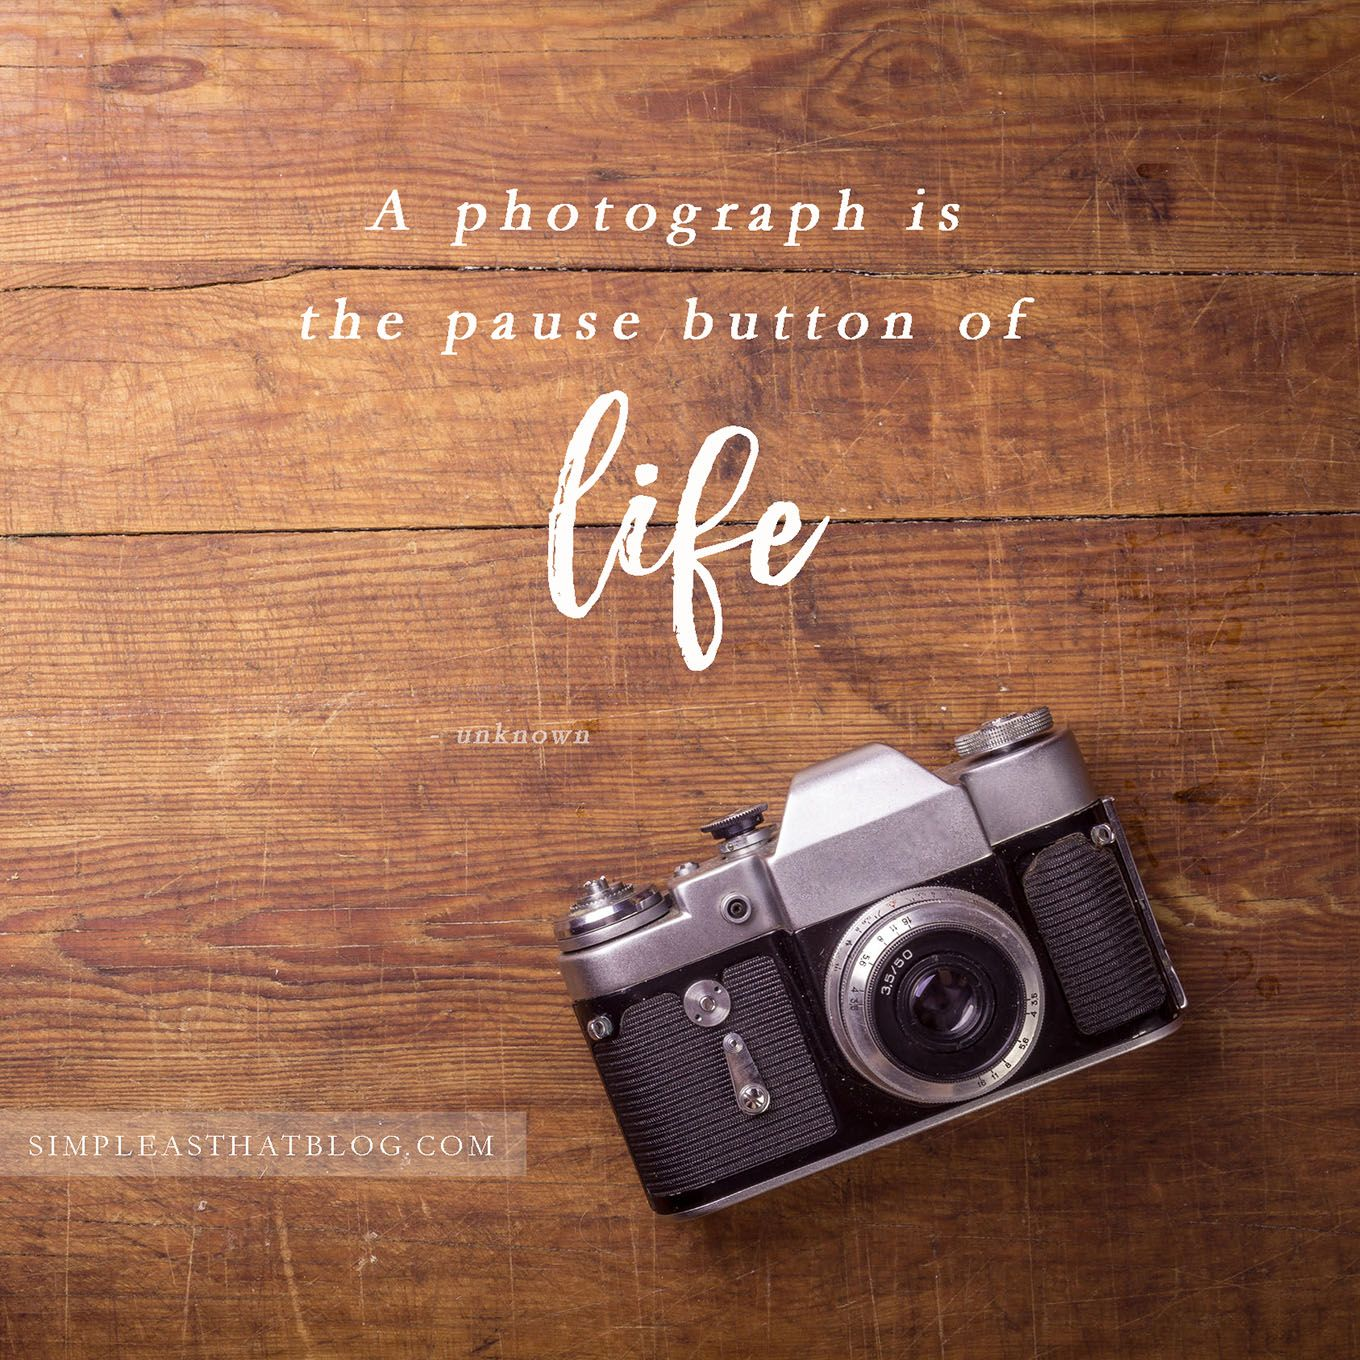 12 Quotes Inspire Photography Journey   Pinterest   Photography     12 Quotes to Inspire your Photography Journey    A photograph is the pause  button of life    unknown